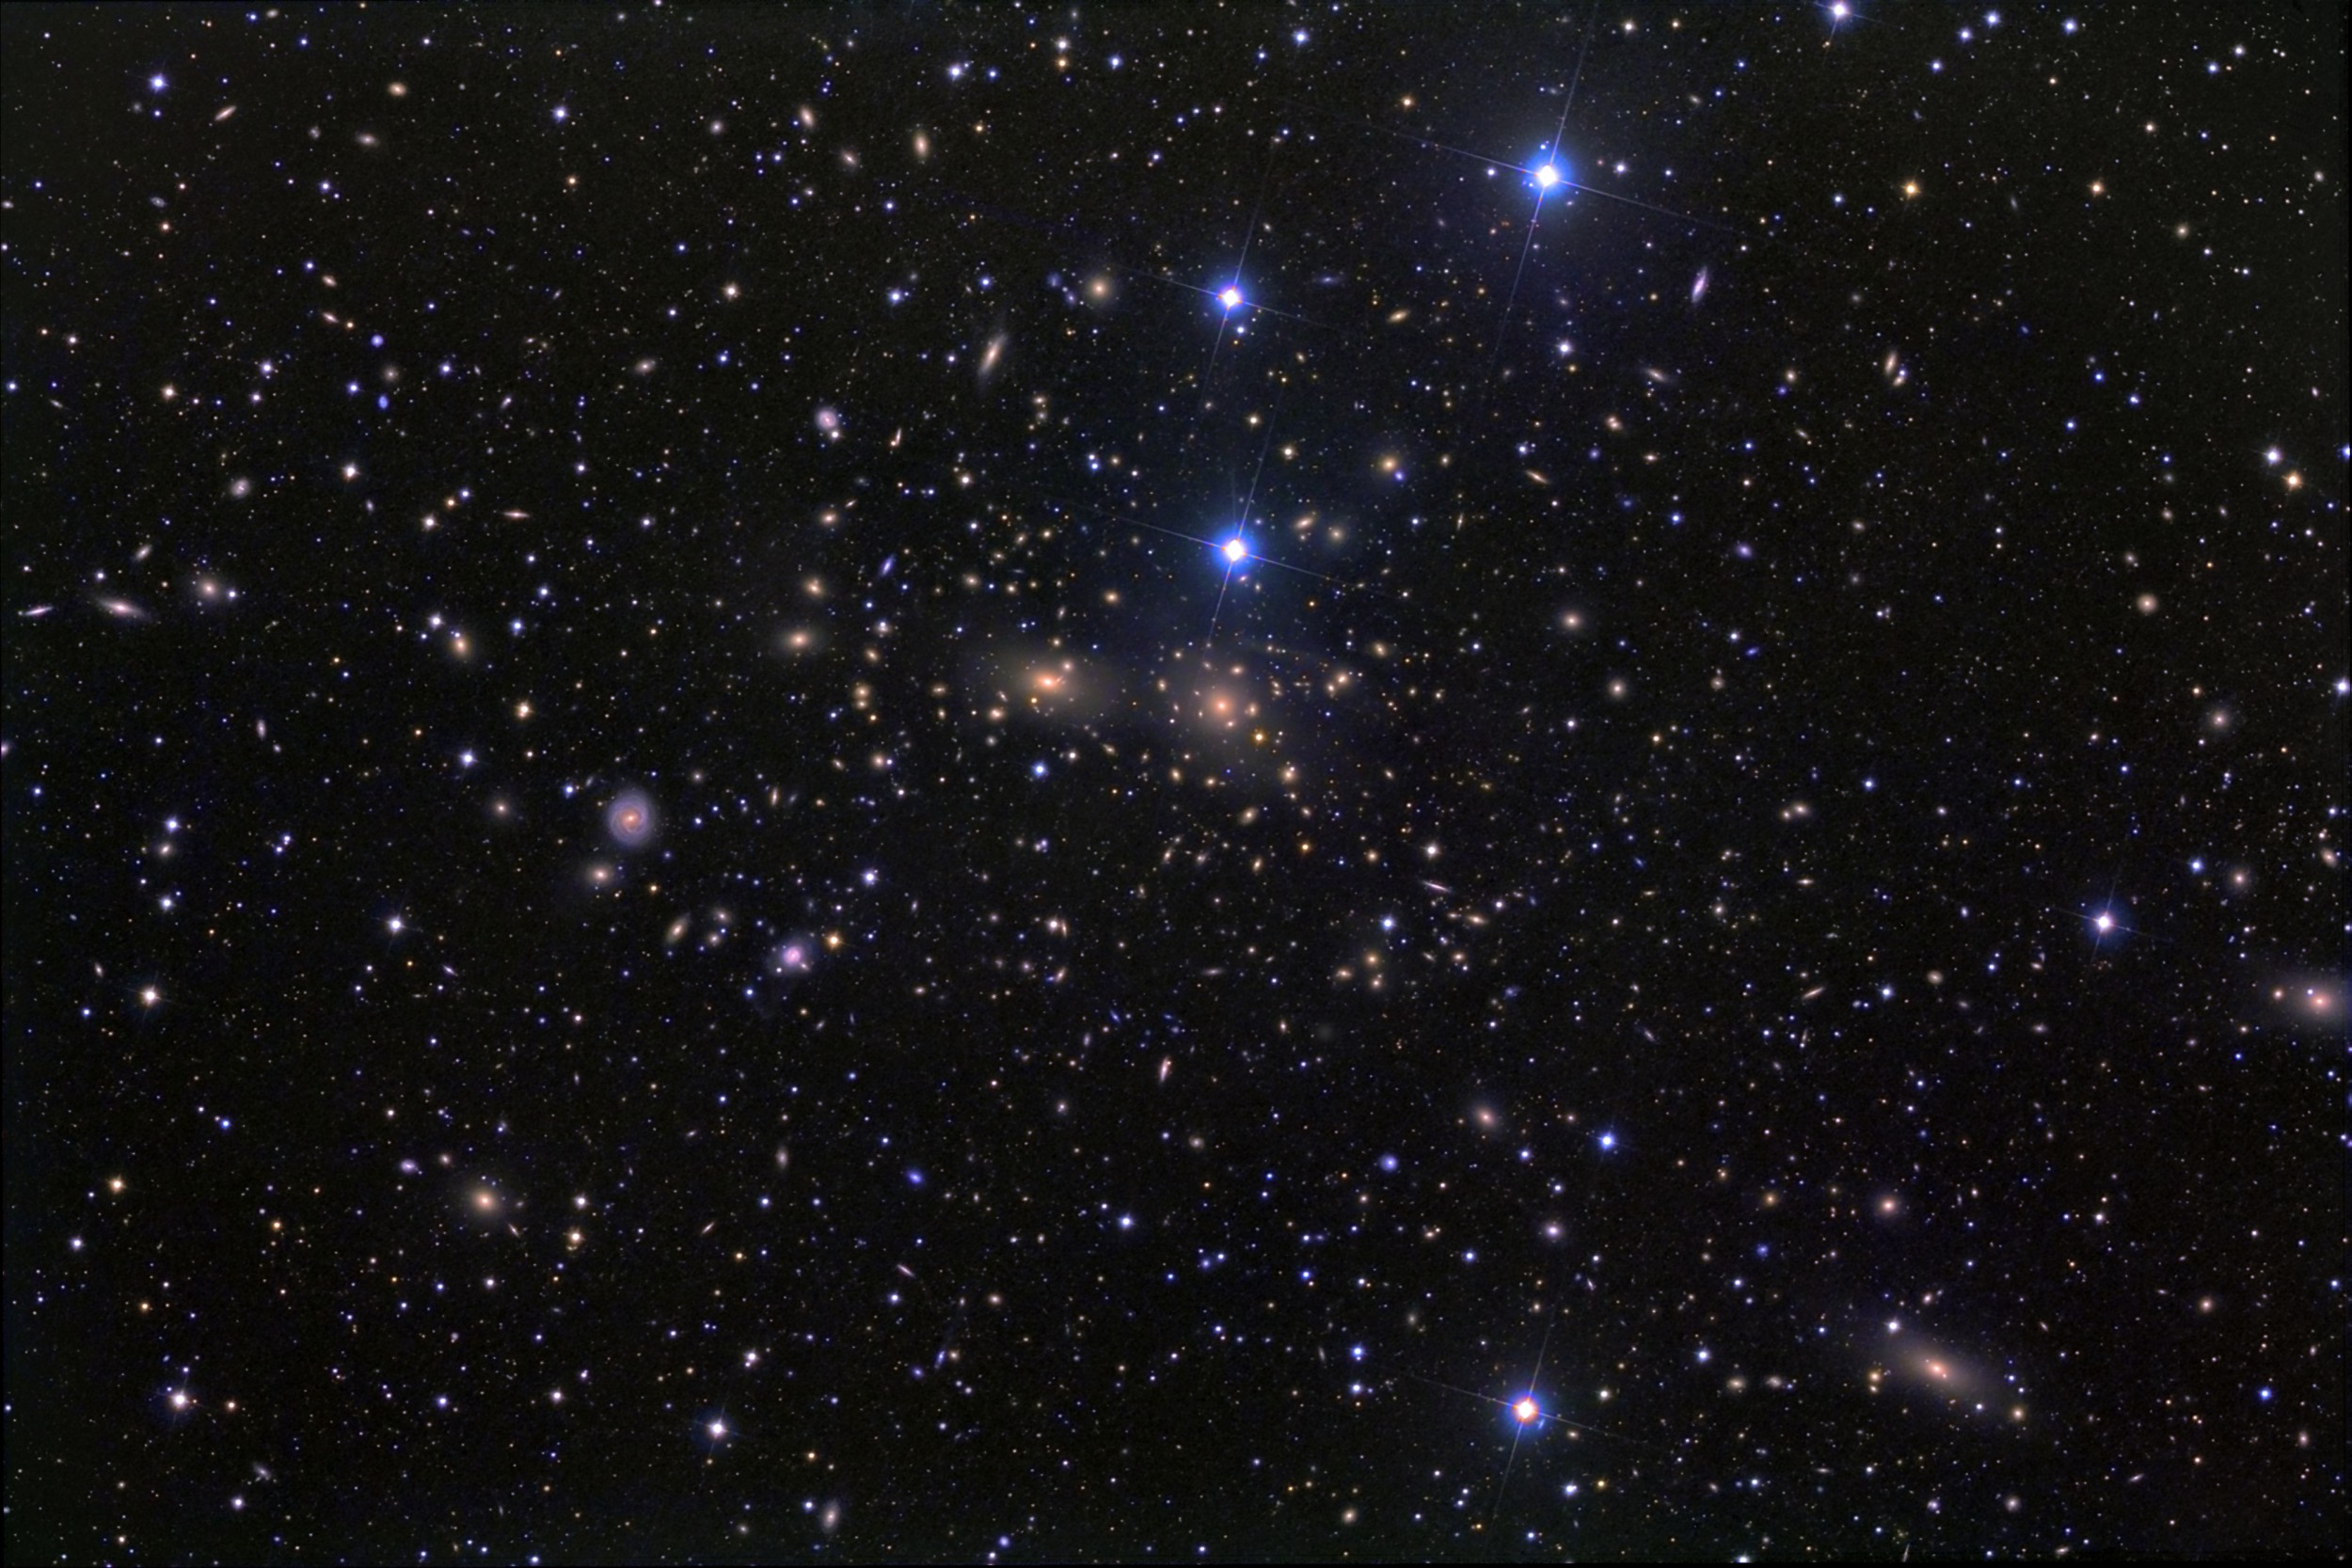 3d Moving Solar System Wallpaper Apod 2010 May 2 The Coma Cluster Of Galaxies